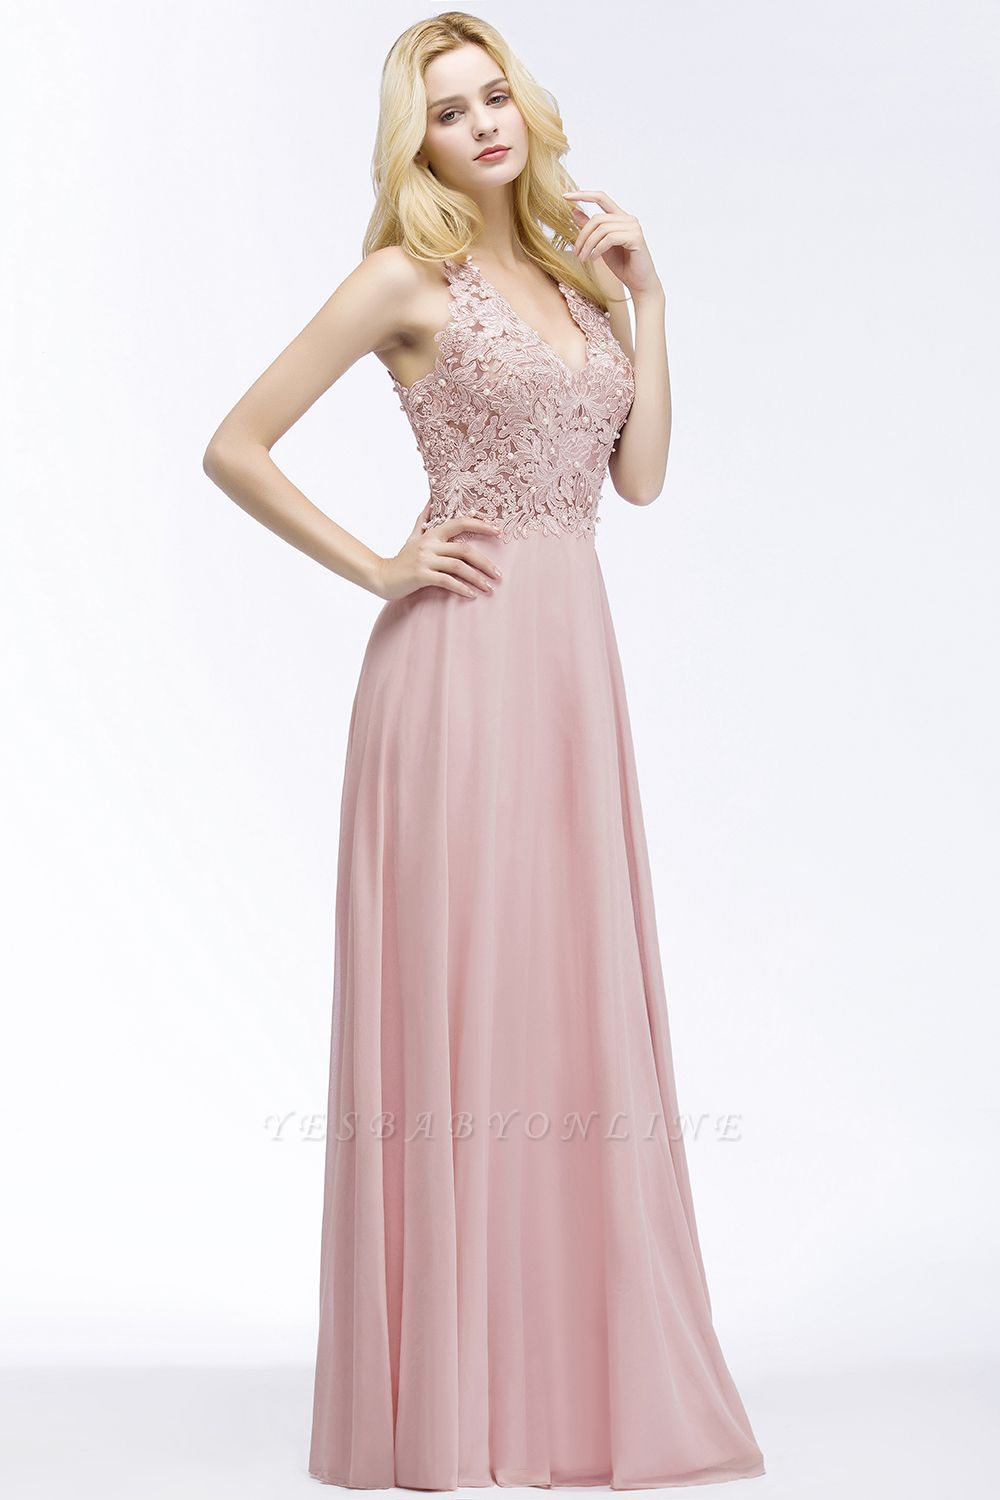 Cheap A-line V-neck Sleeveless Long Appliques Chiffon Bridesmaid Dress in Stock